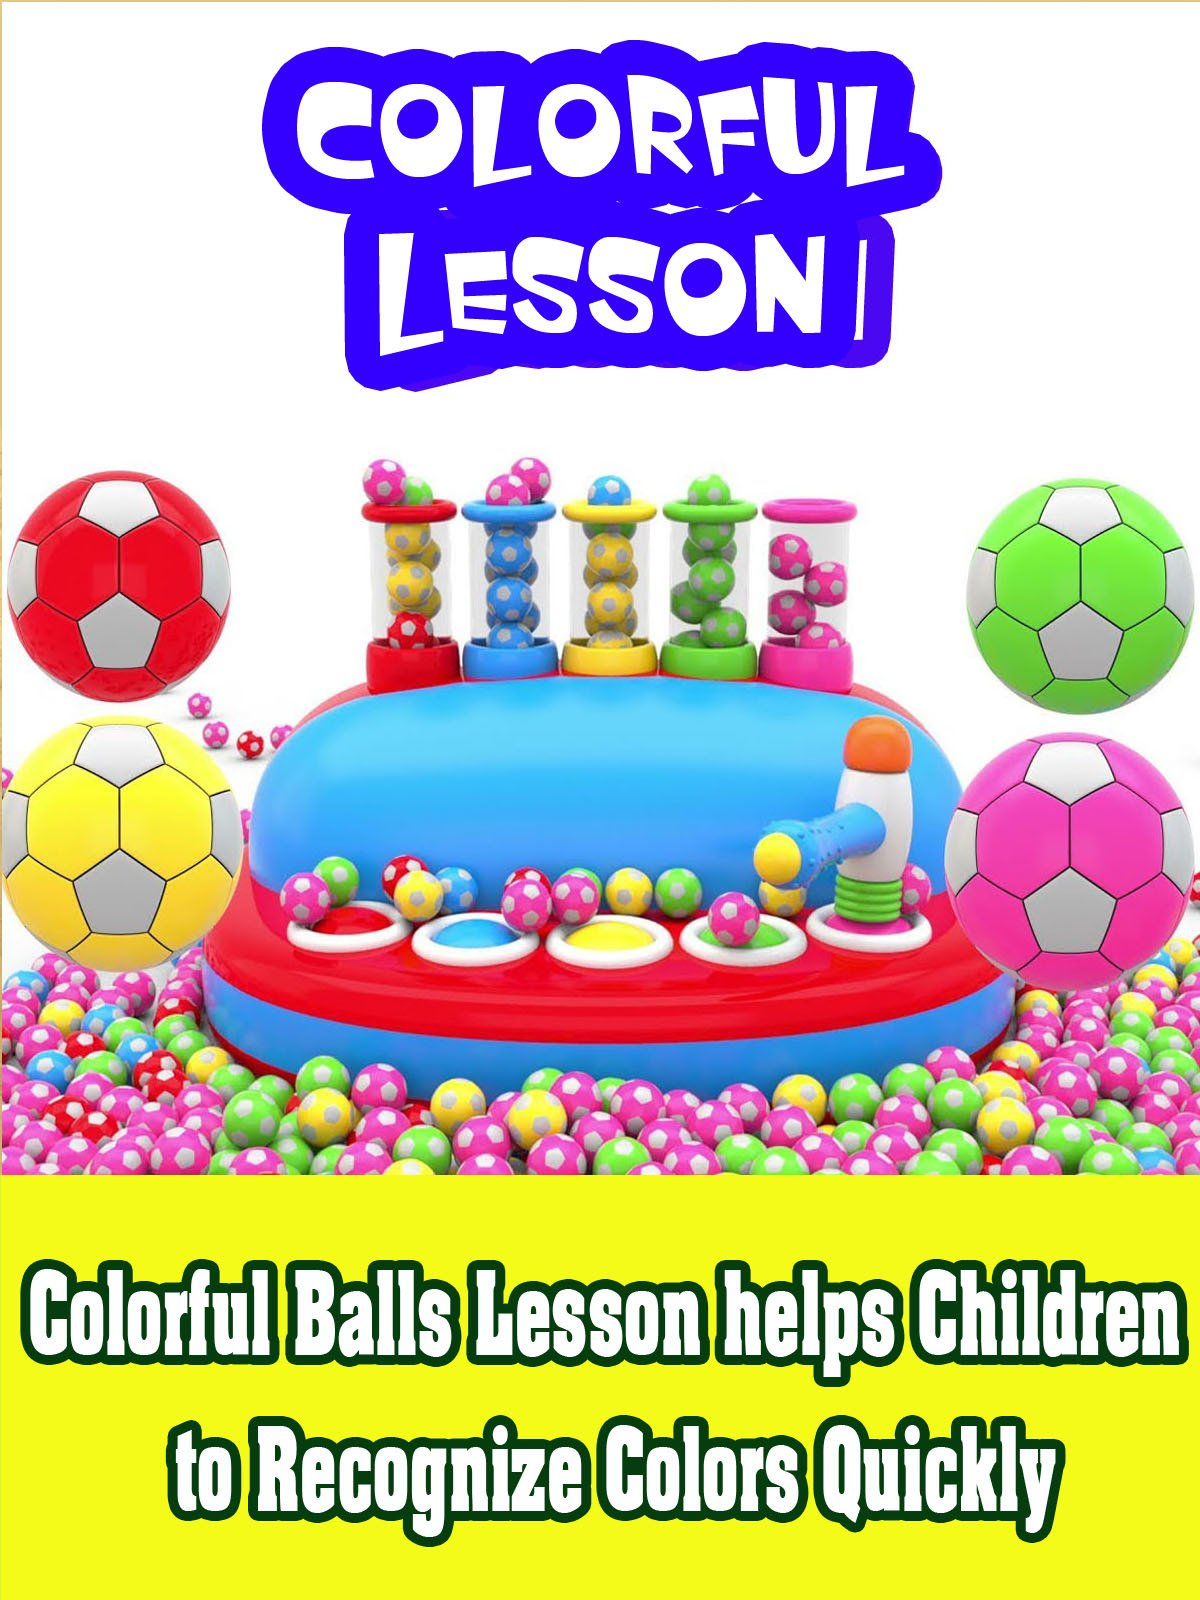 Colorful Balls Lesson helps children to recognize colors quickly